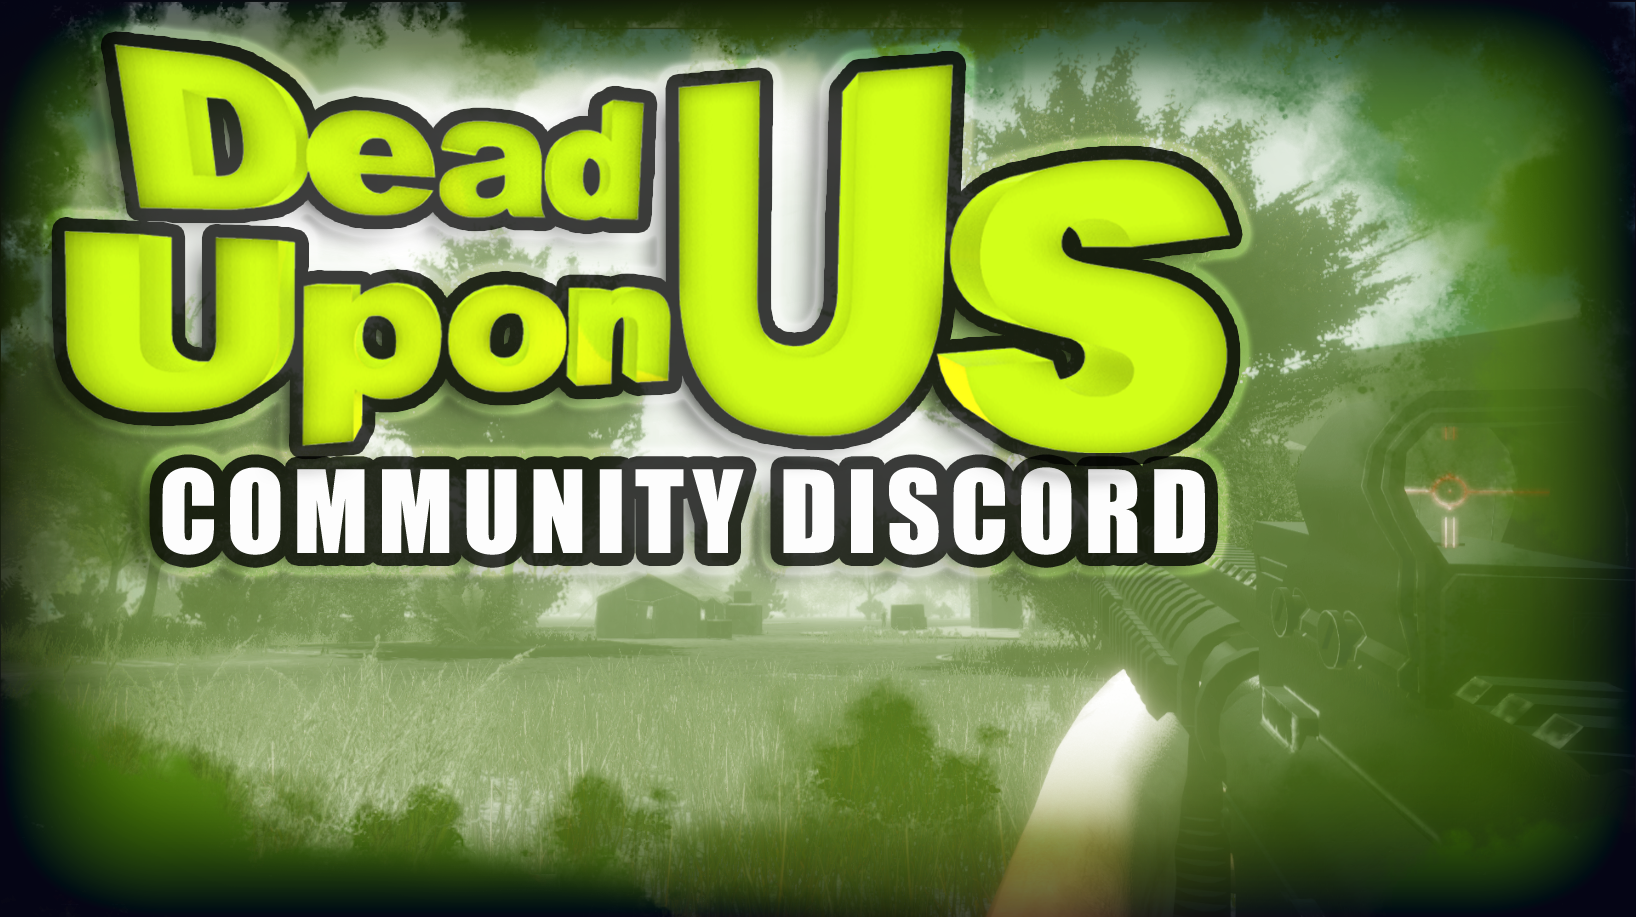 CommunityDiscord